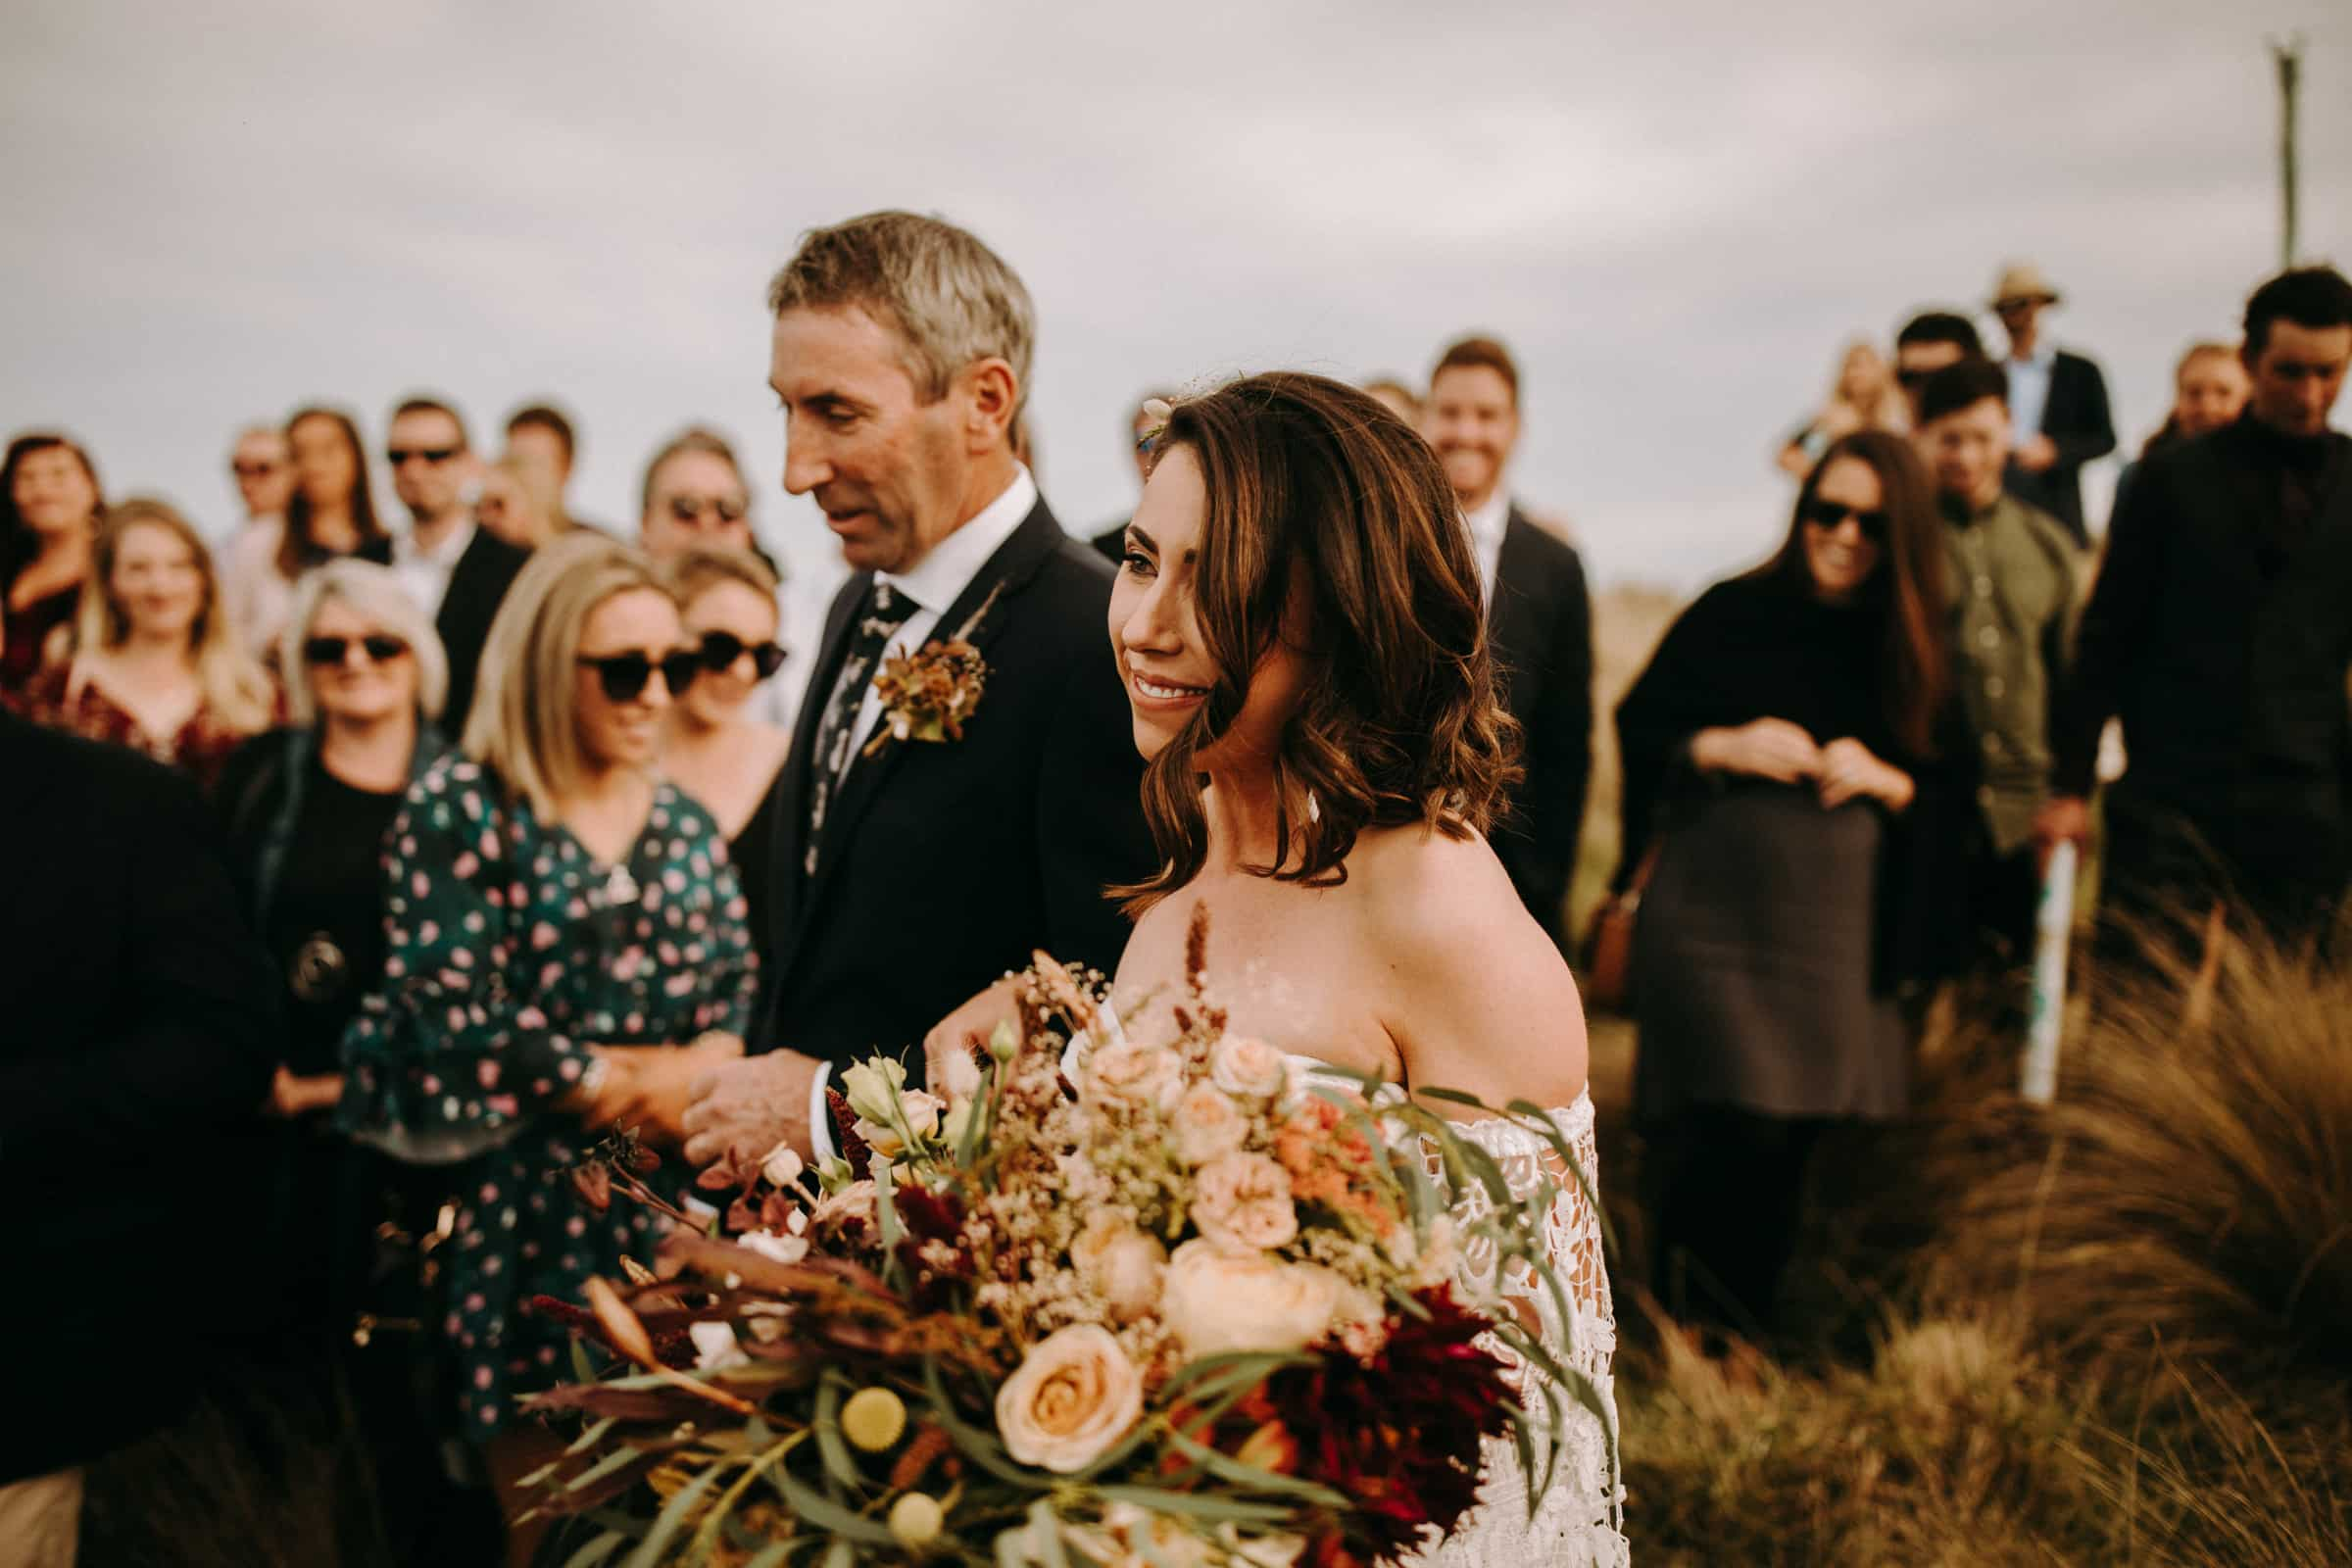 A bride and her father are walking down the aisle in a dry meadow and wedding guests are standing next to them.